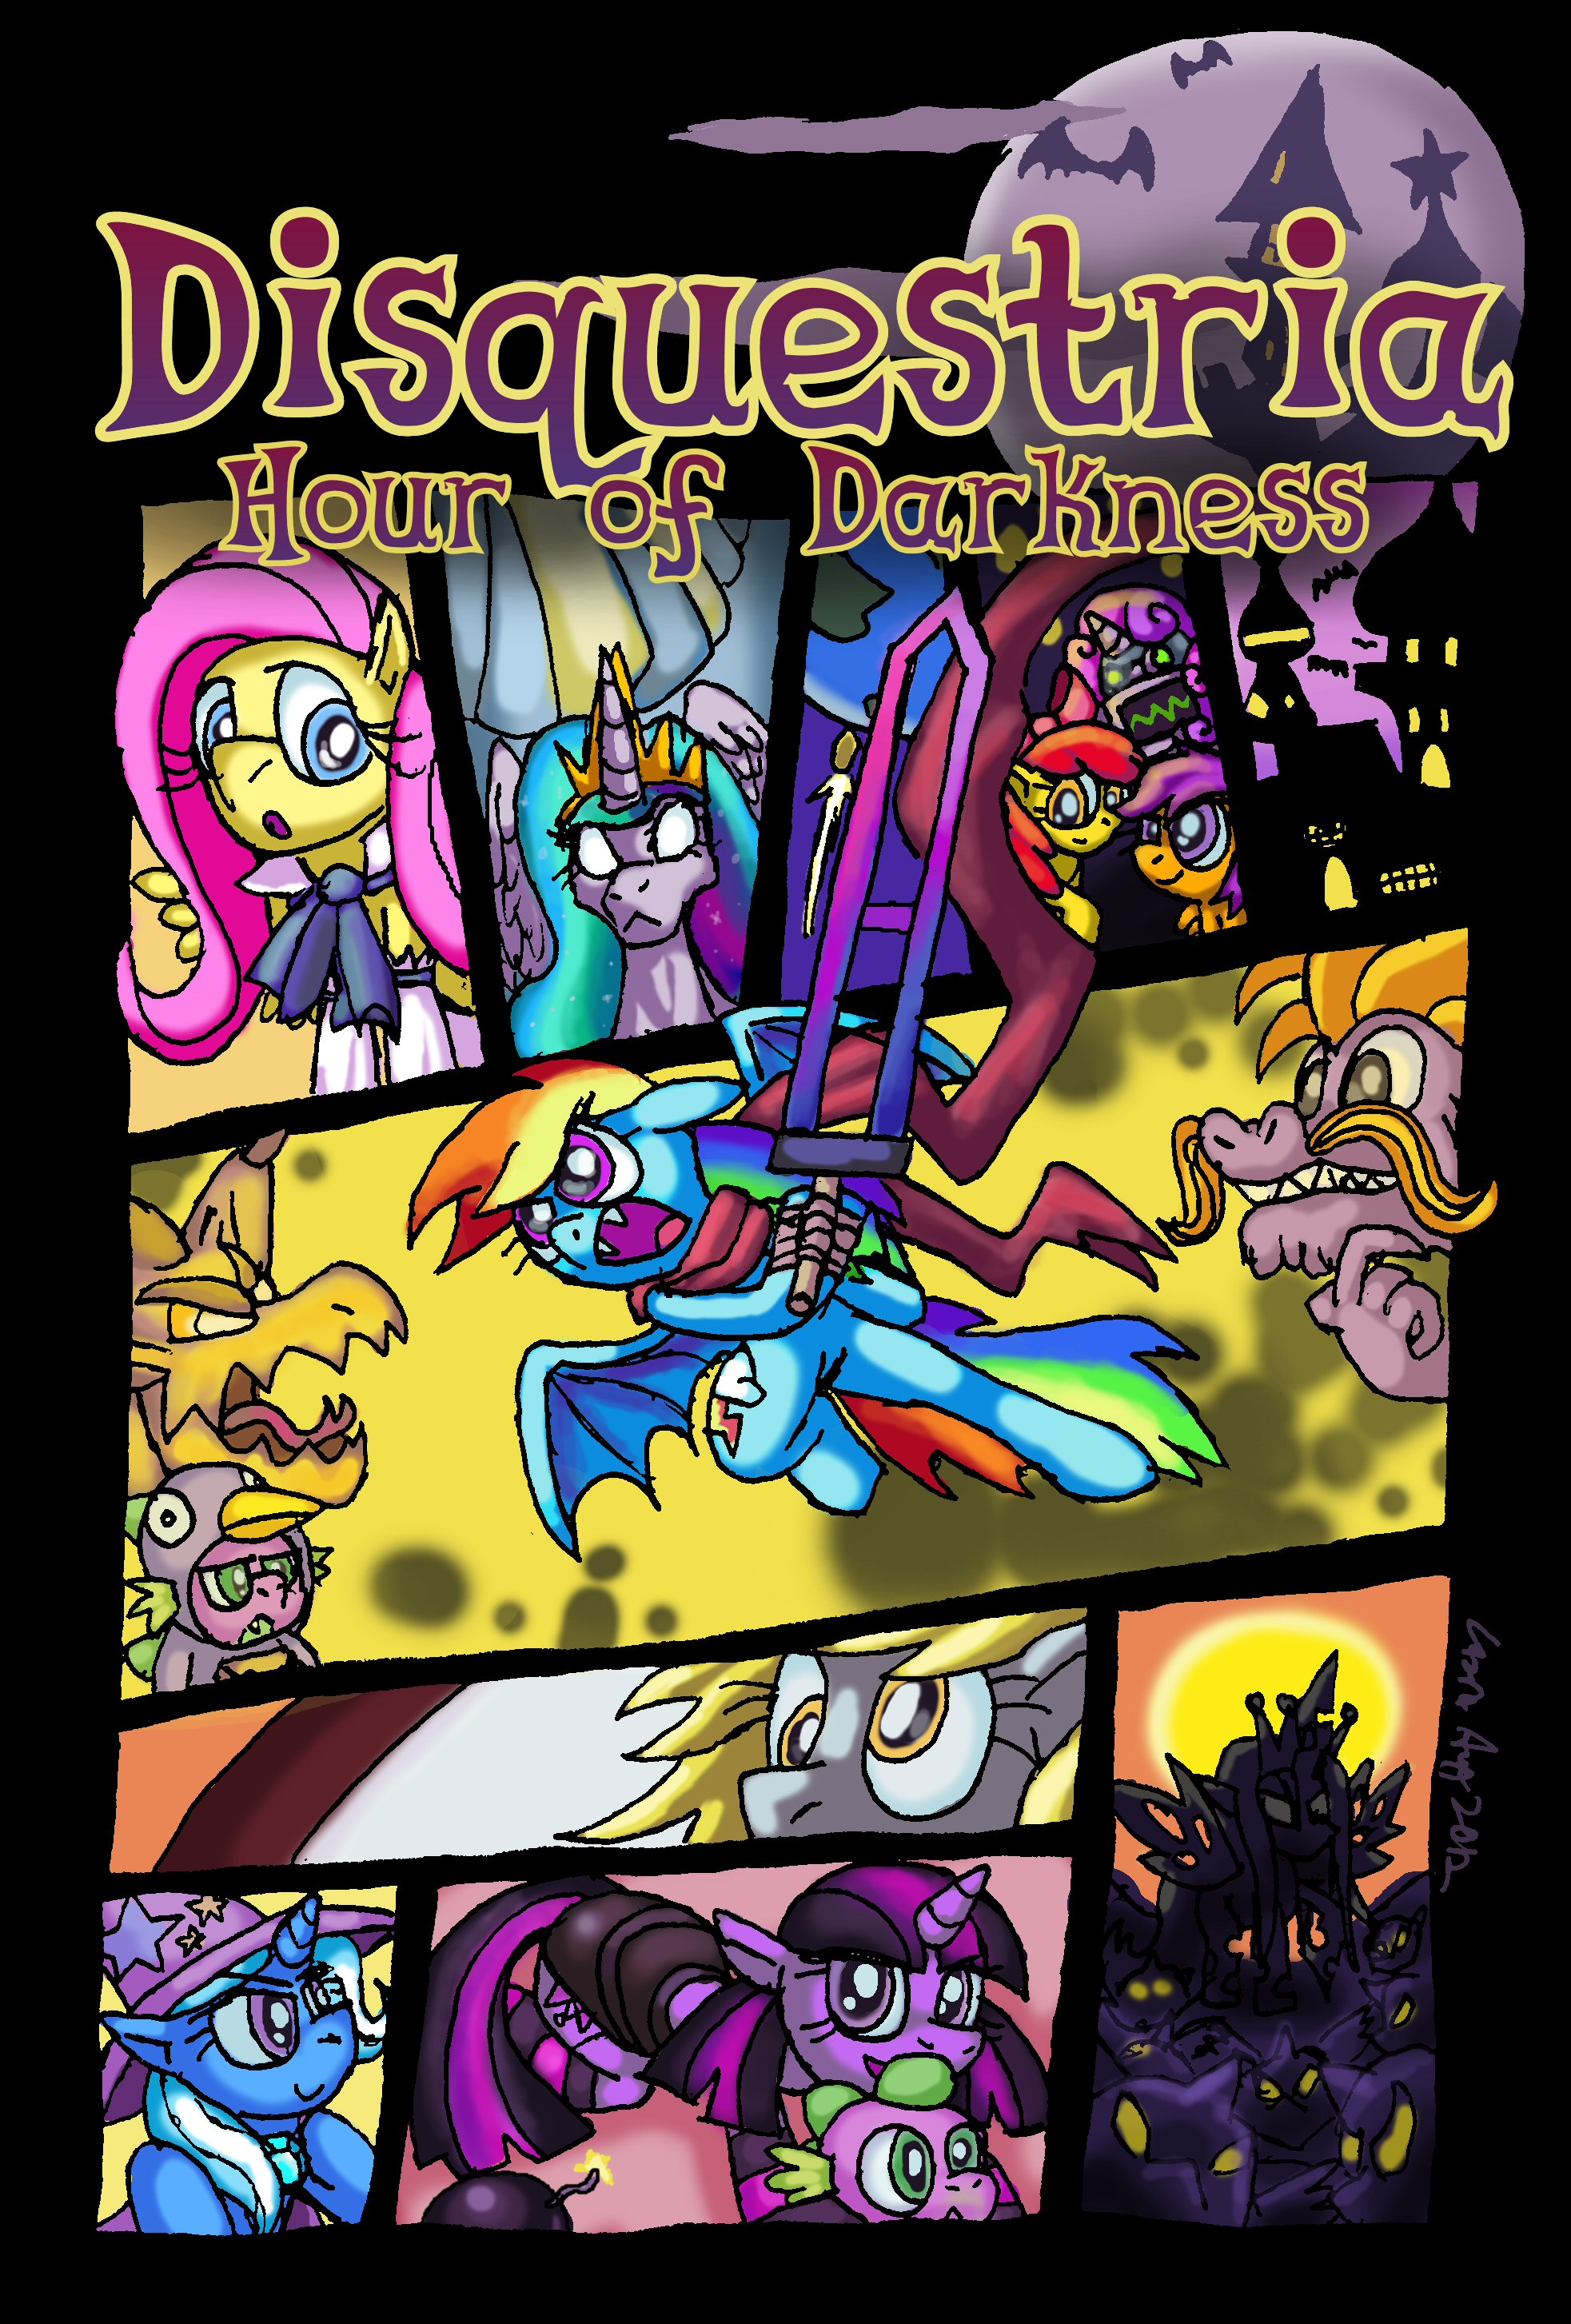 Disquestria: Hour of Darkness by Cazra